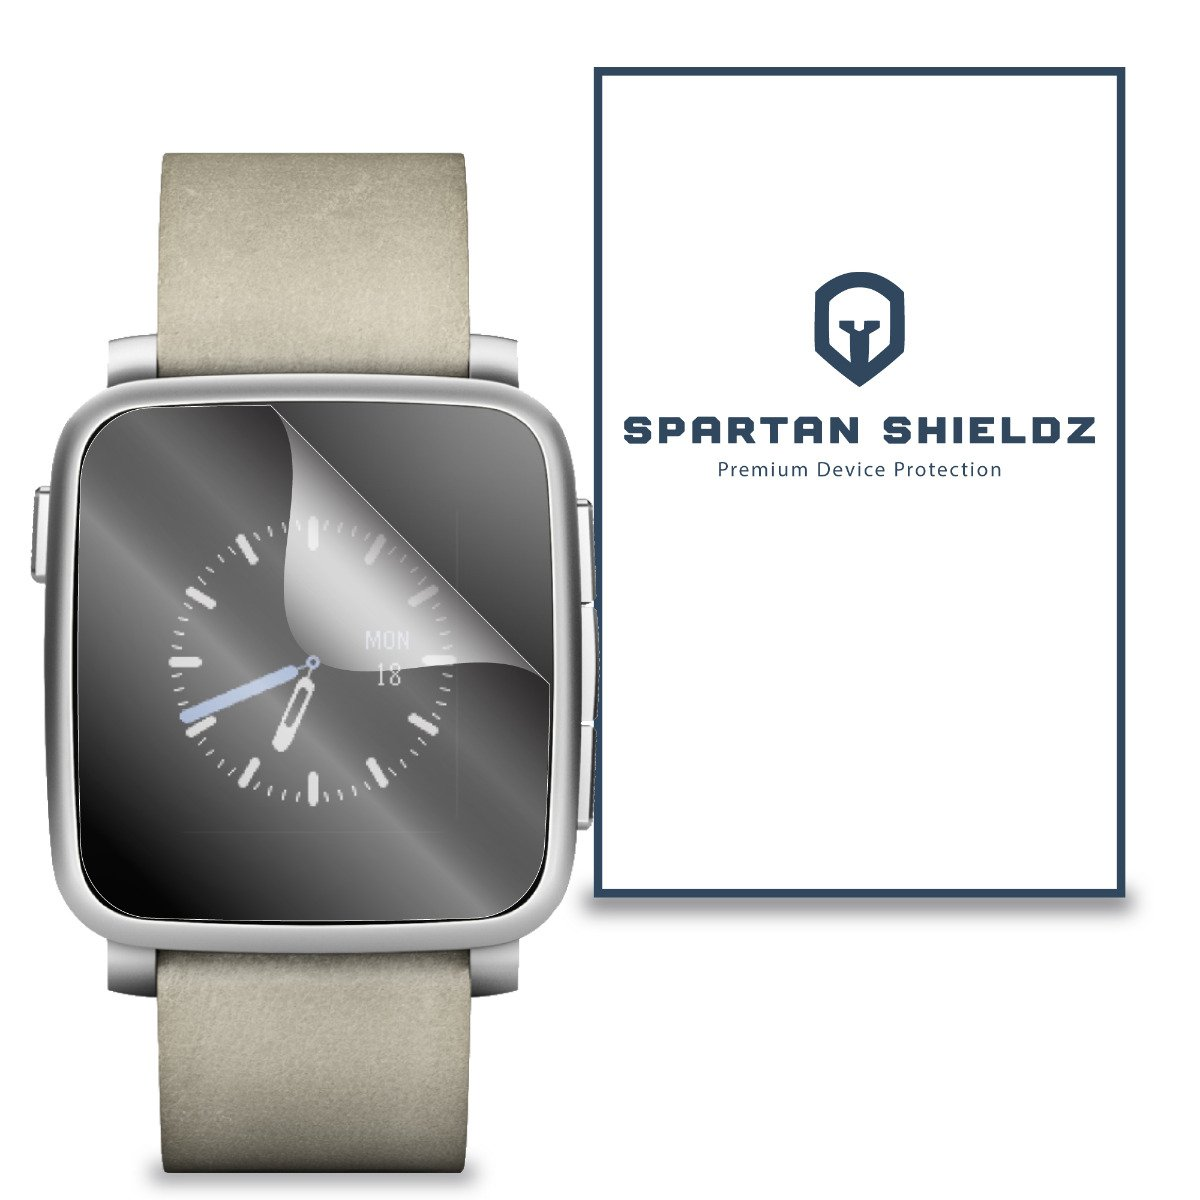 6X - Spartan Shield Premium Screen Protector For Pebble Time Steel Smartwatch - 6X